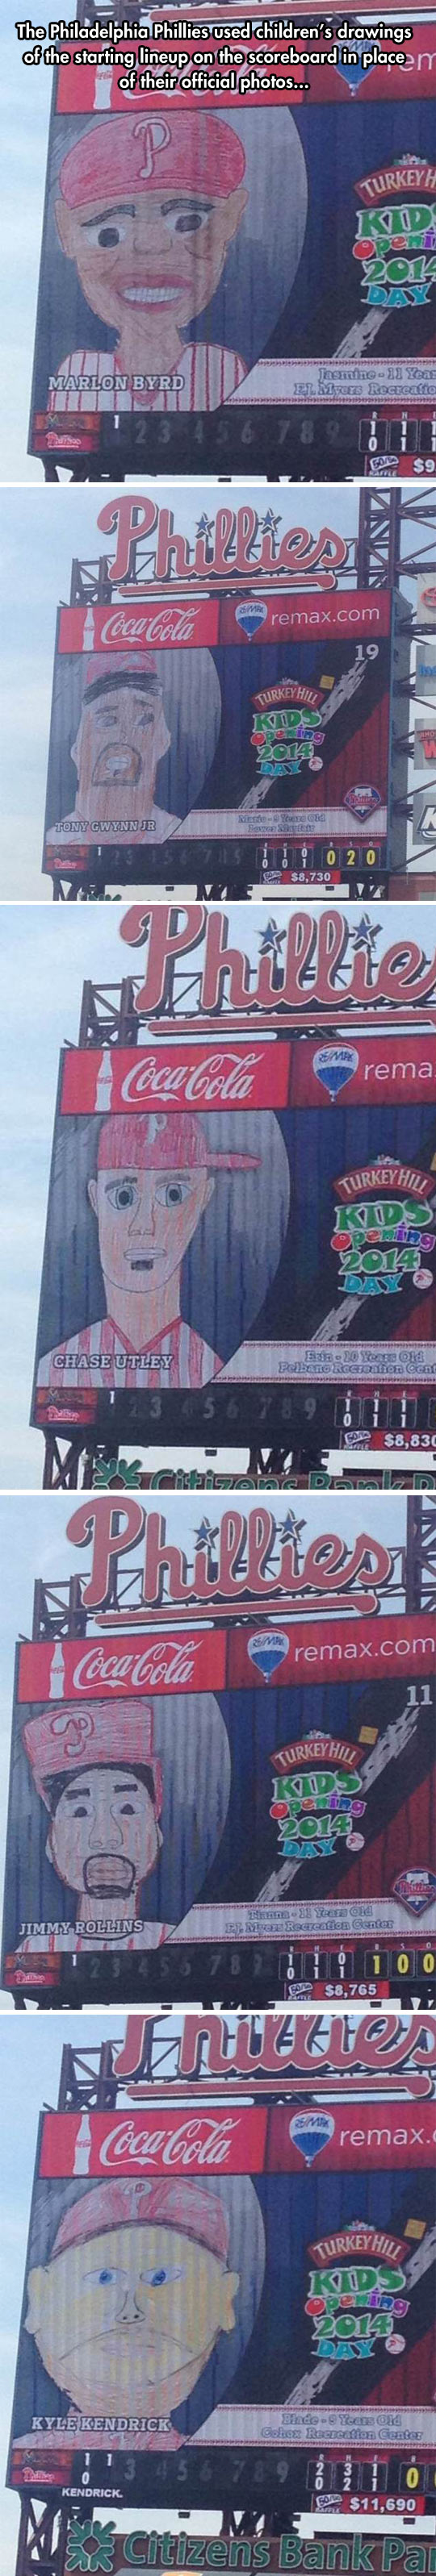 Children's Drawings Of The Phillies' Lineup Are Adorably Goofy